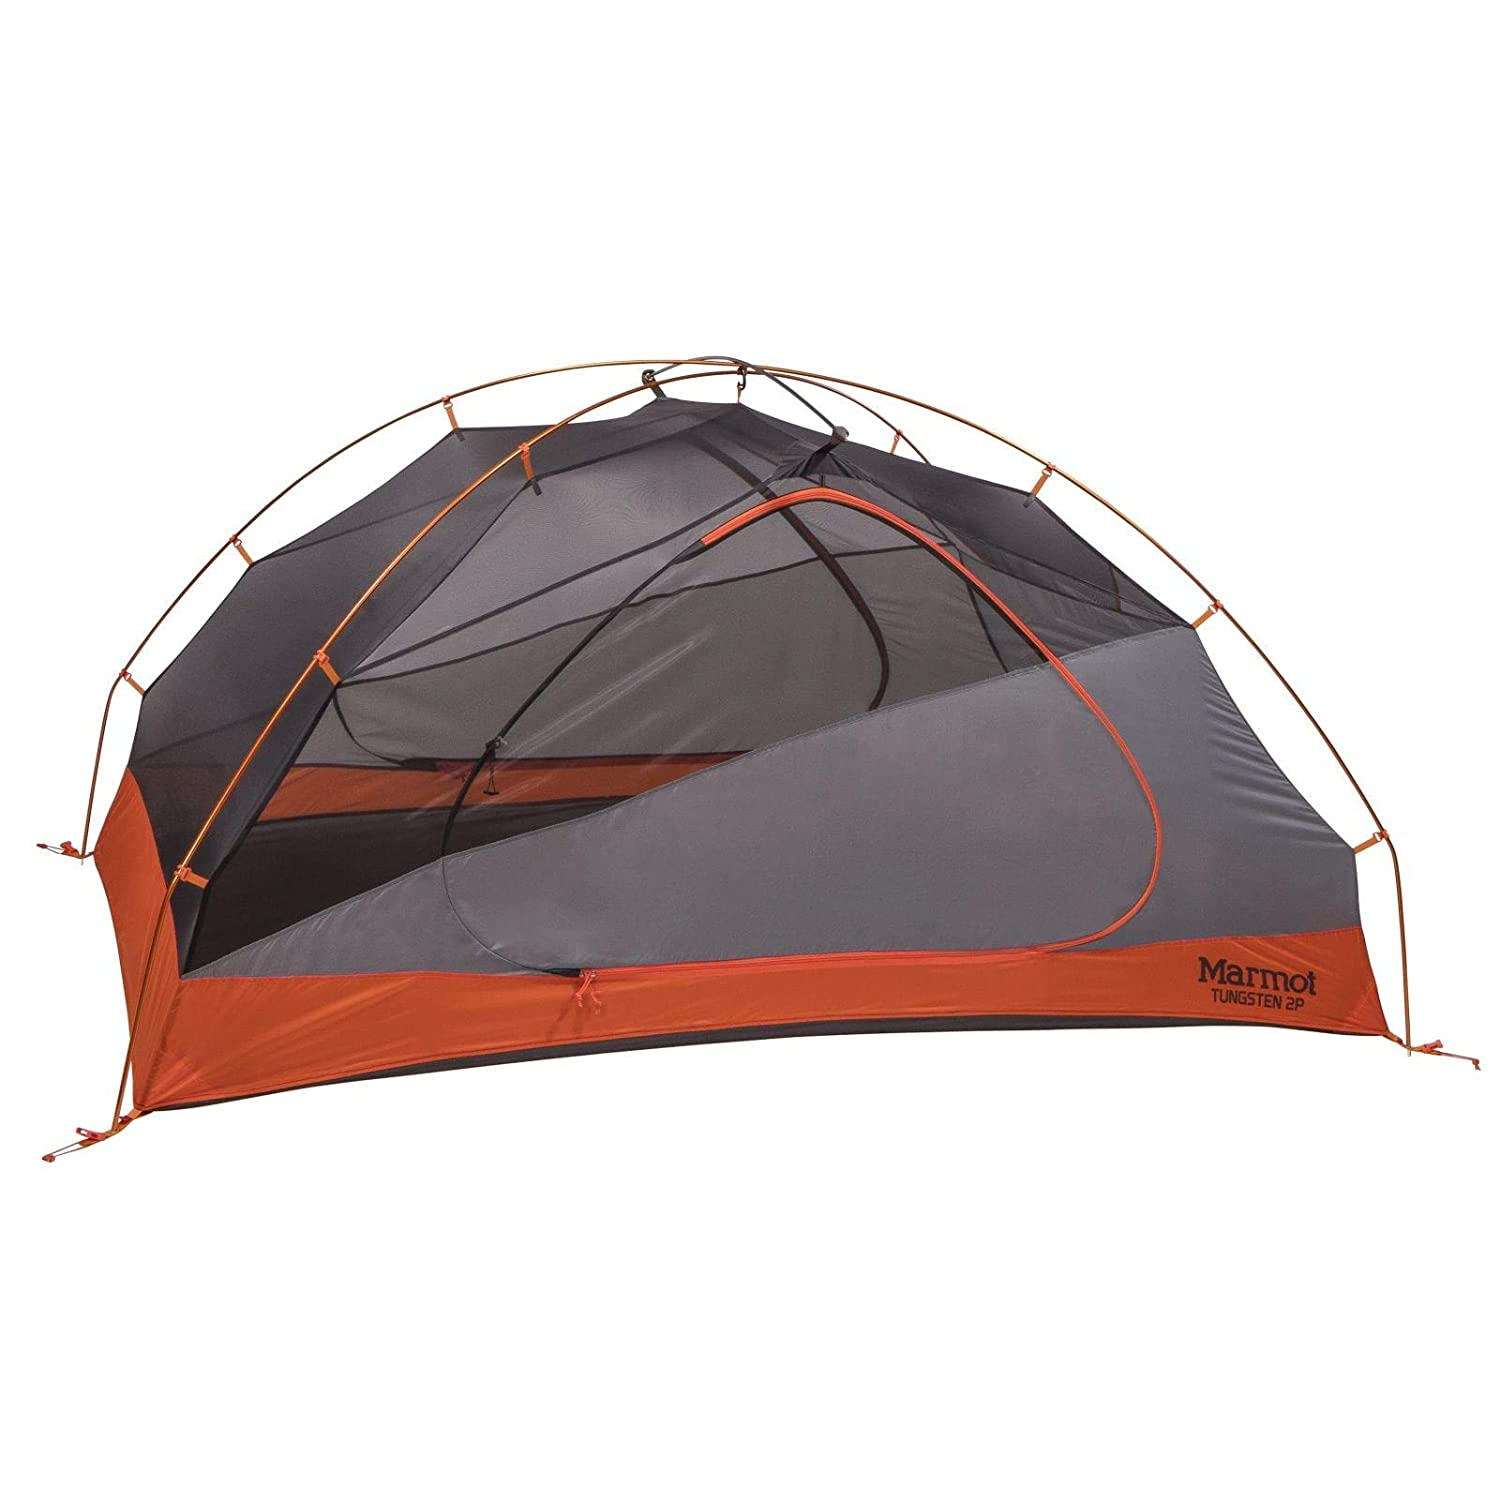 Marmot Tungsten 2 Person Backpacking Tent w Footprint